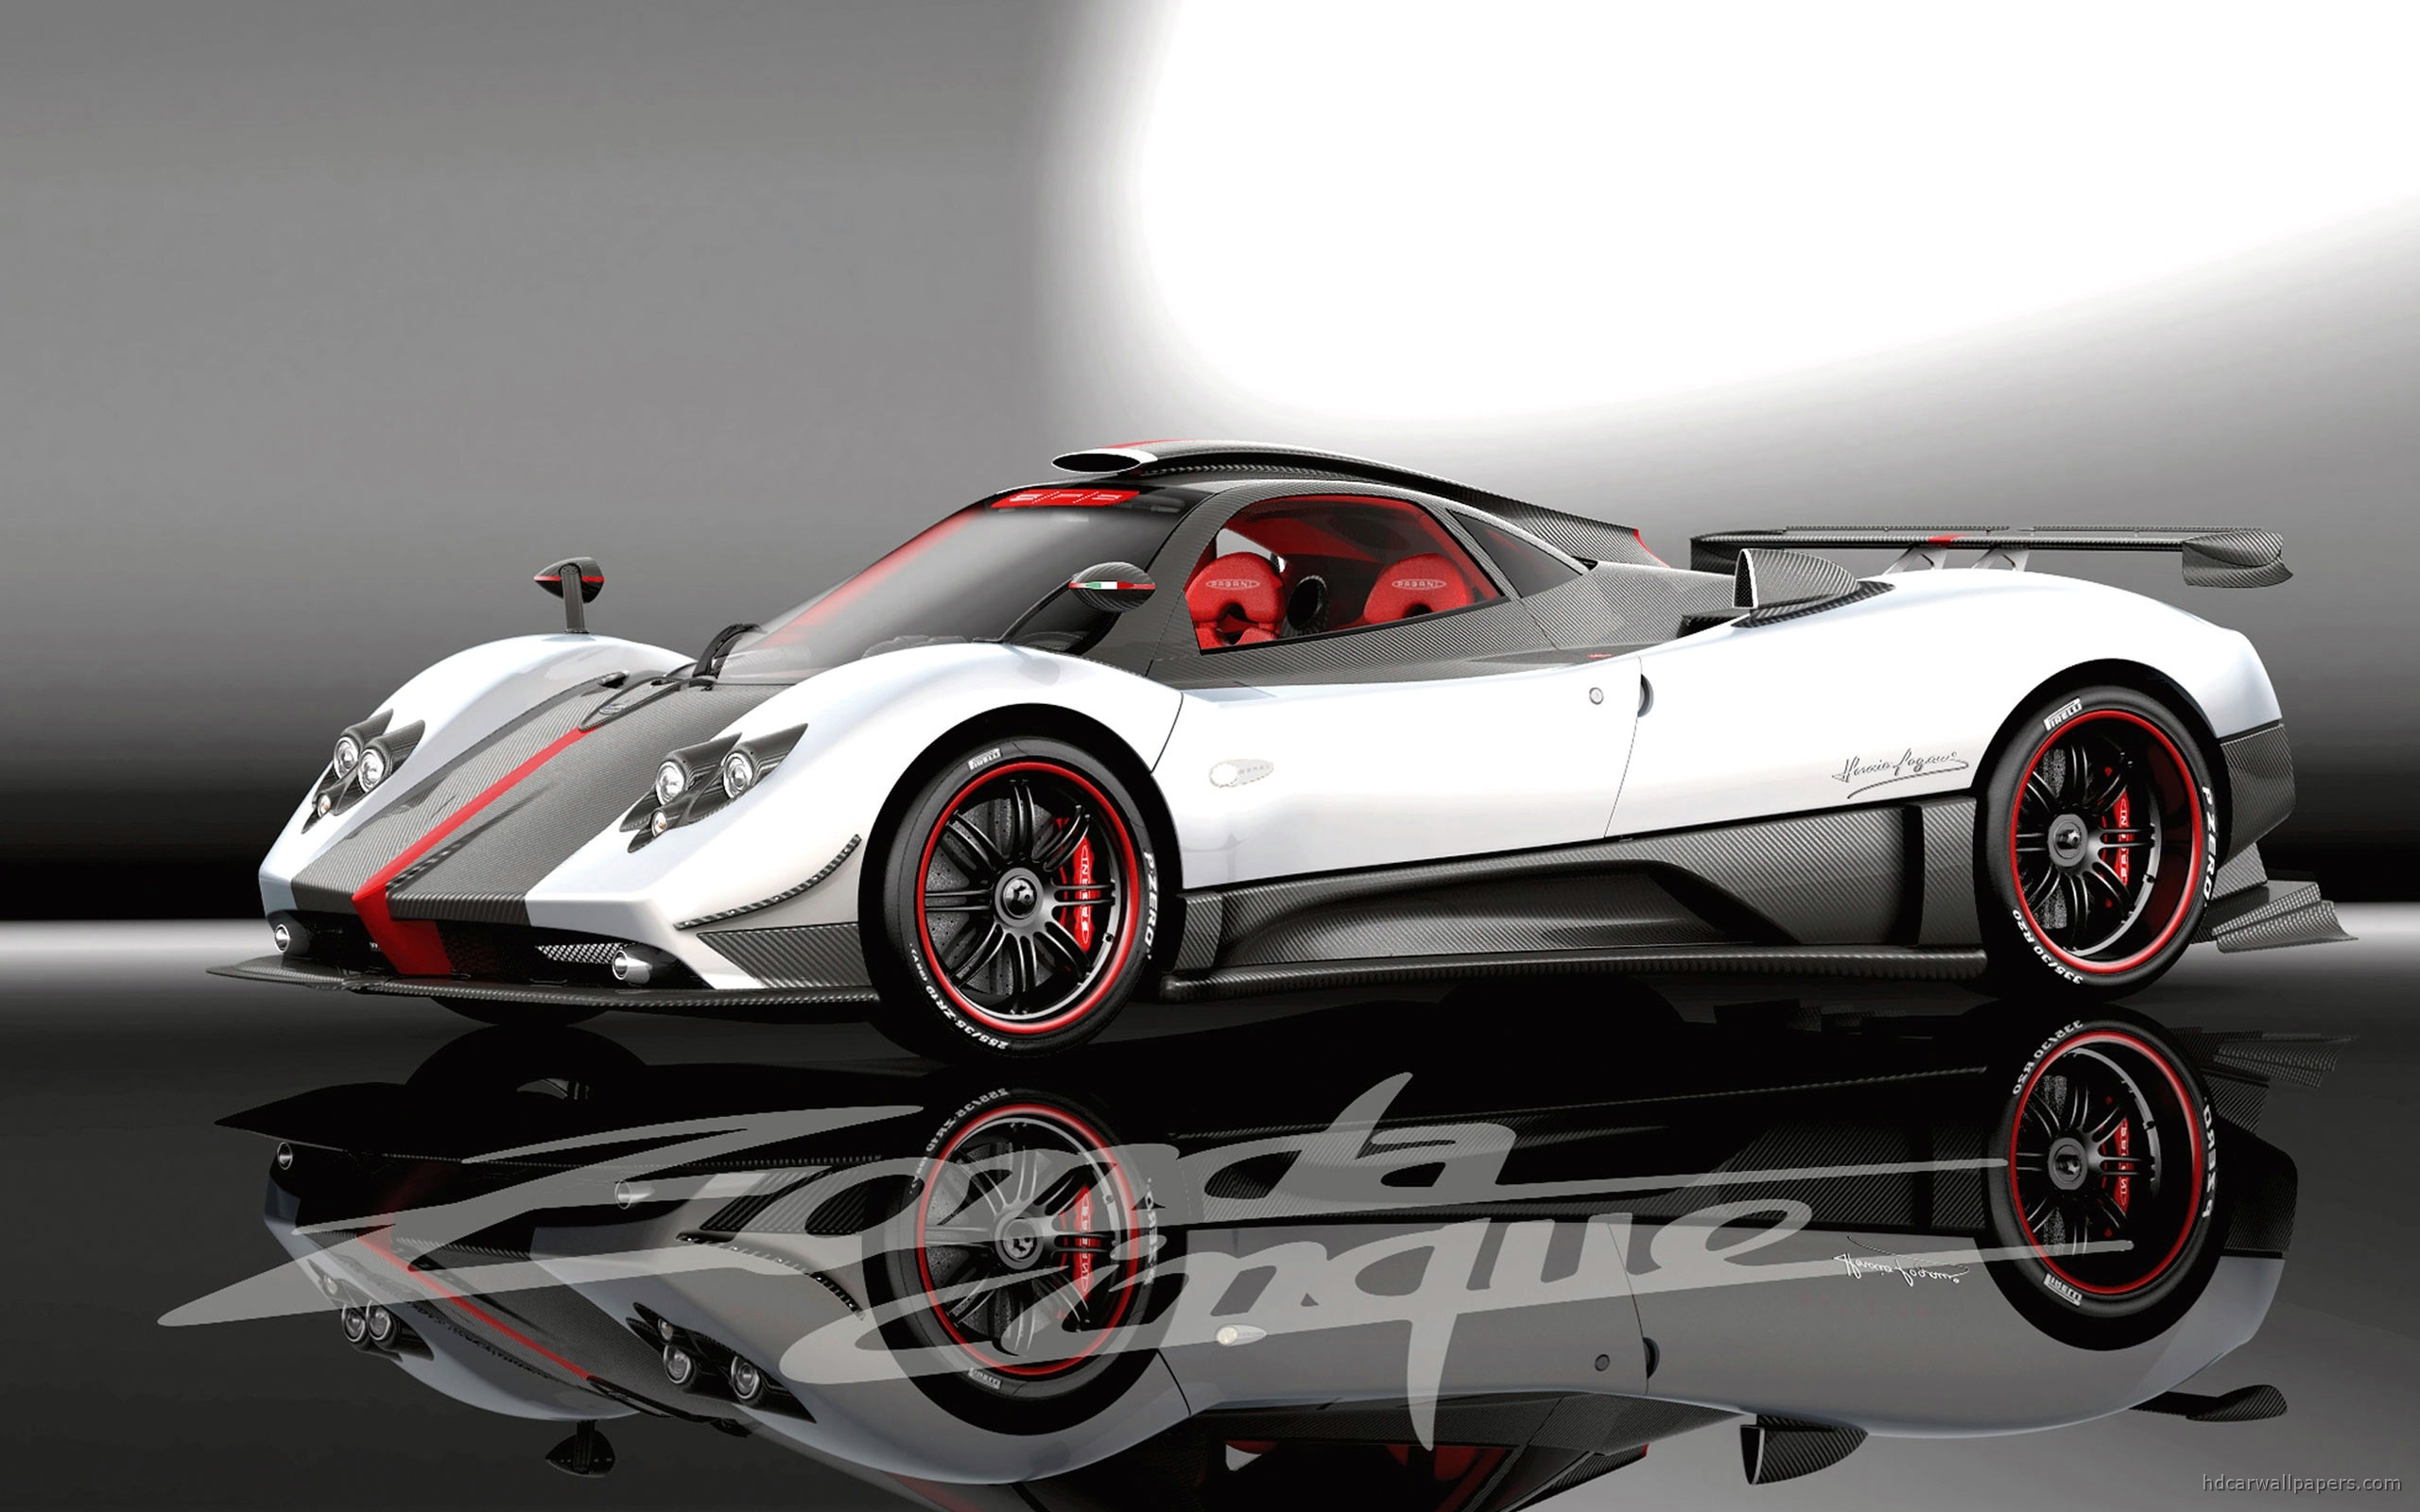 Pagani-car-wallpaper-wp421118-1